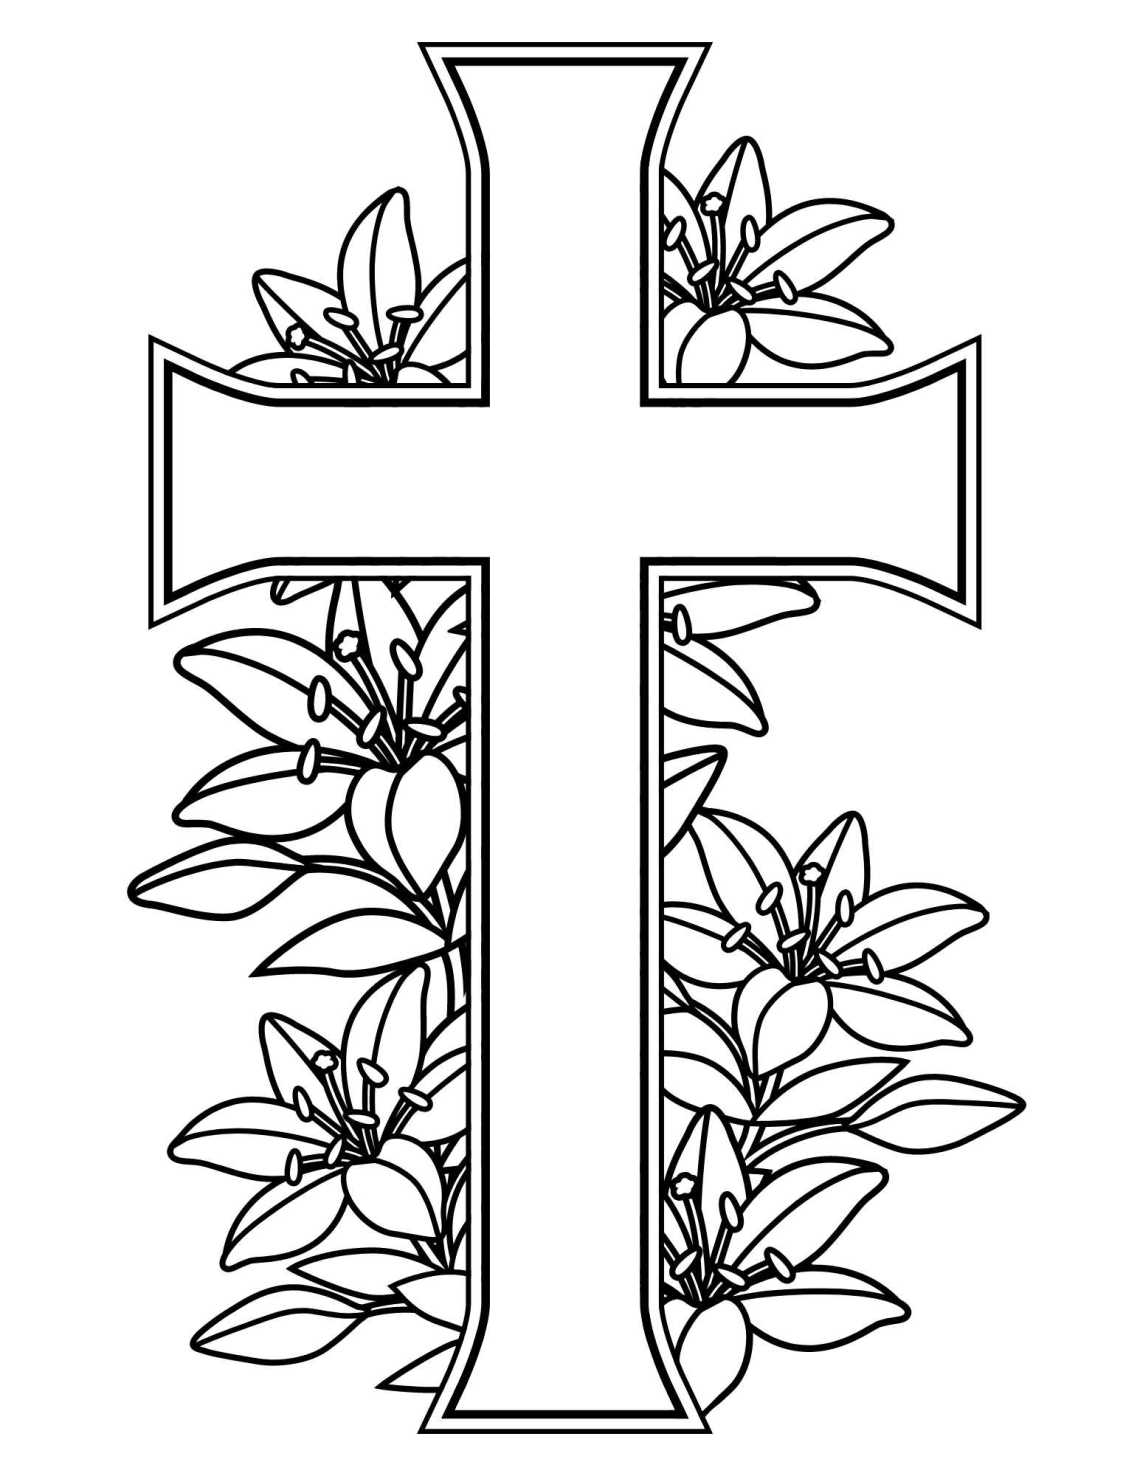 Easter Coloring Pages - Sunday school church printables